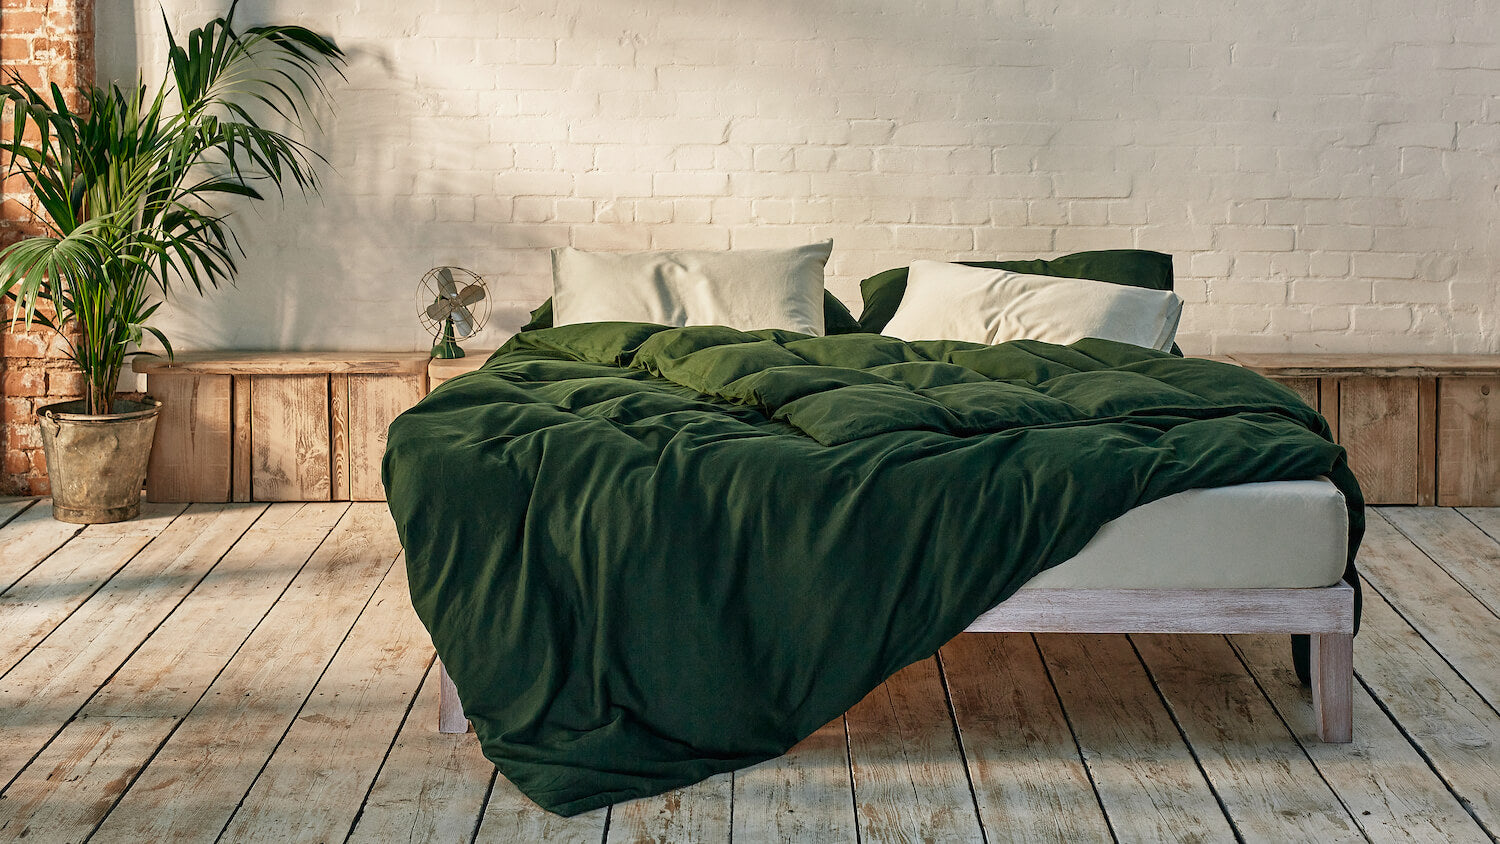 sage green and dark green bedding mix and match on bed in a modern room